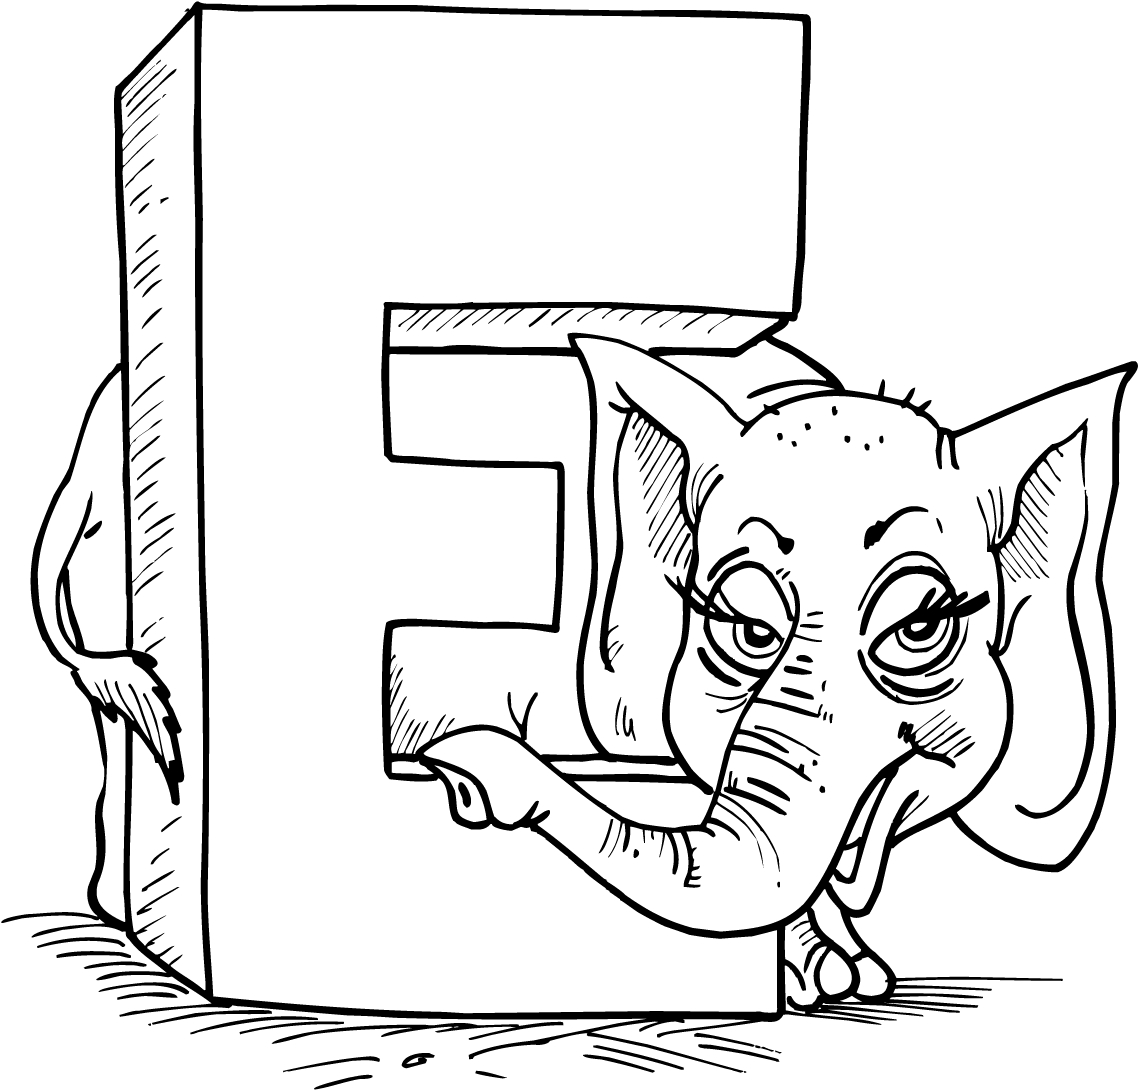 letter e coloring page - 657